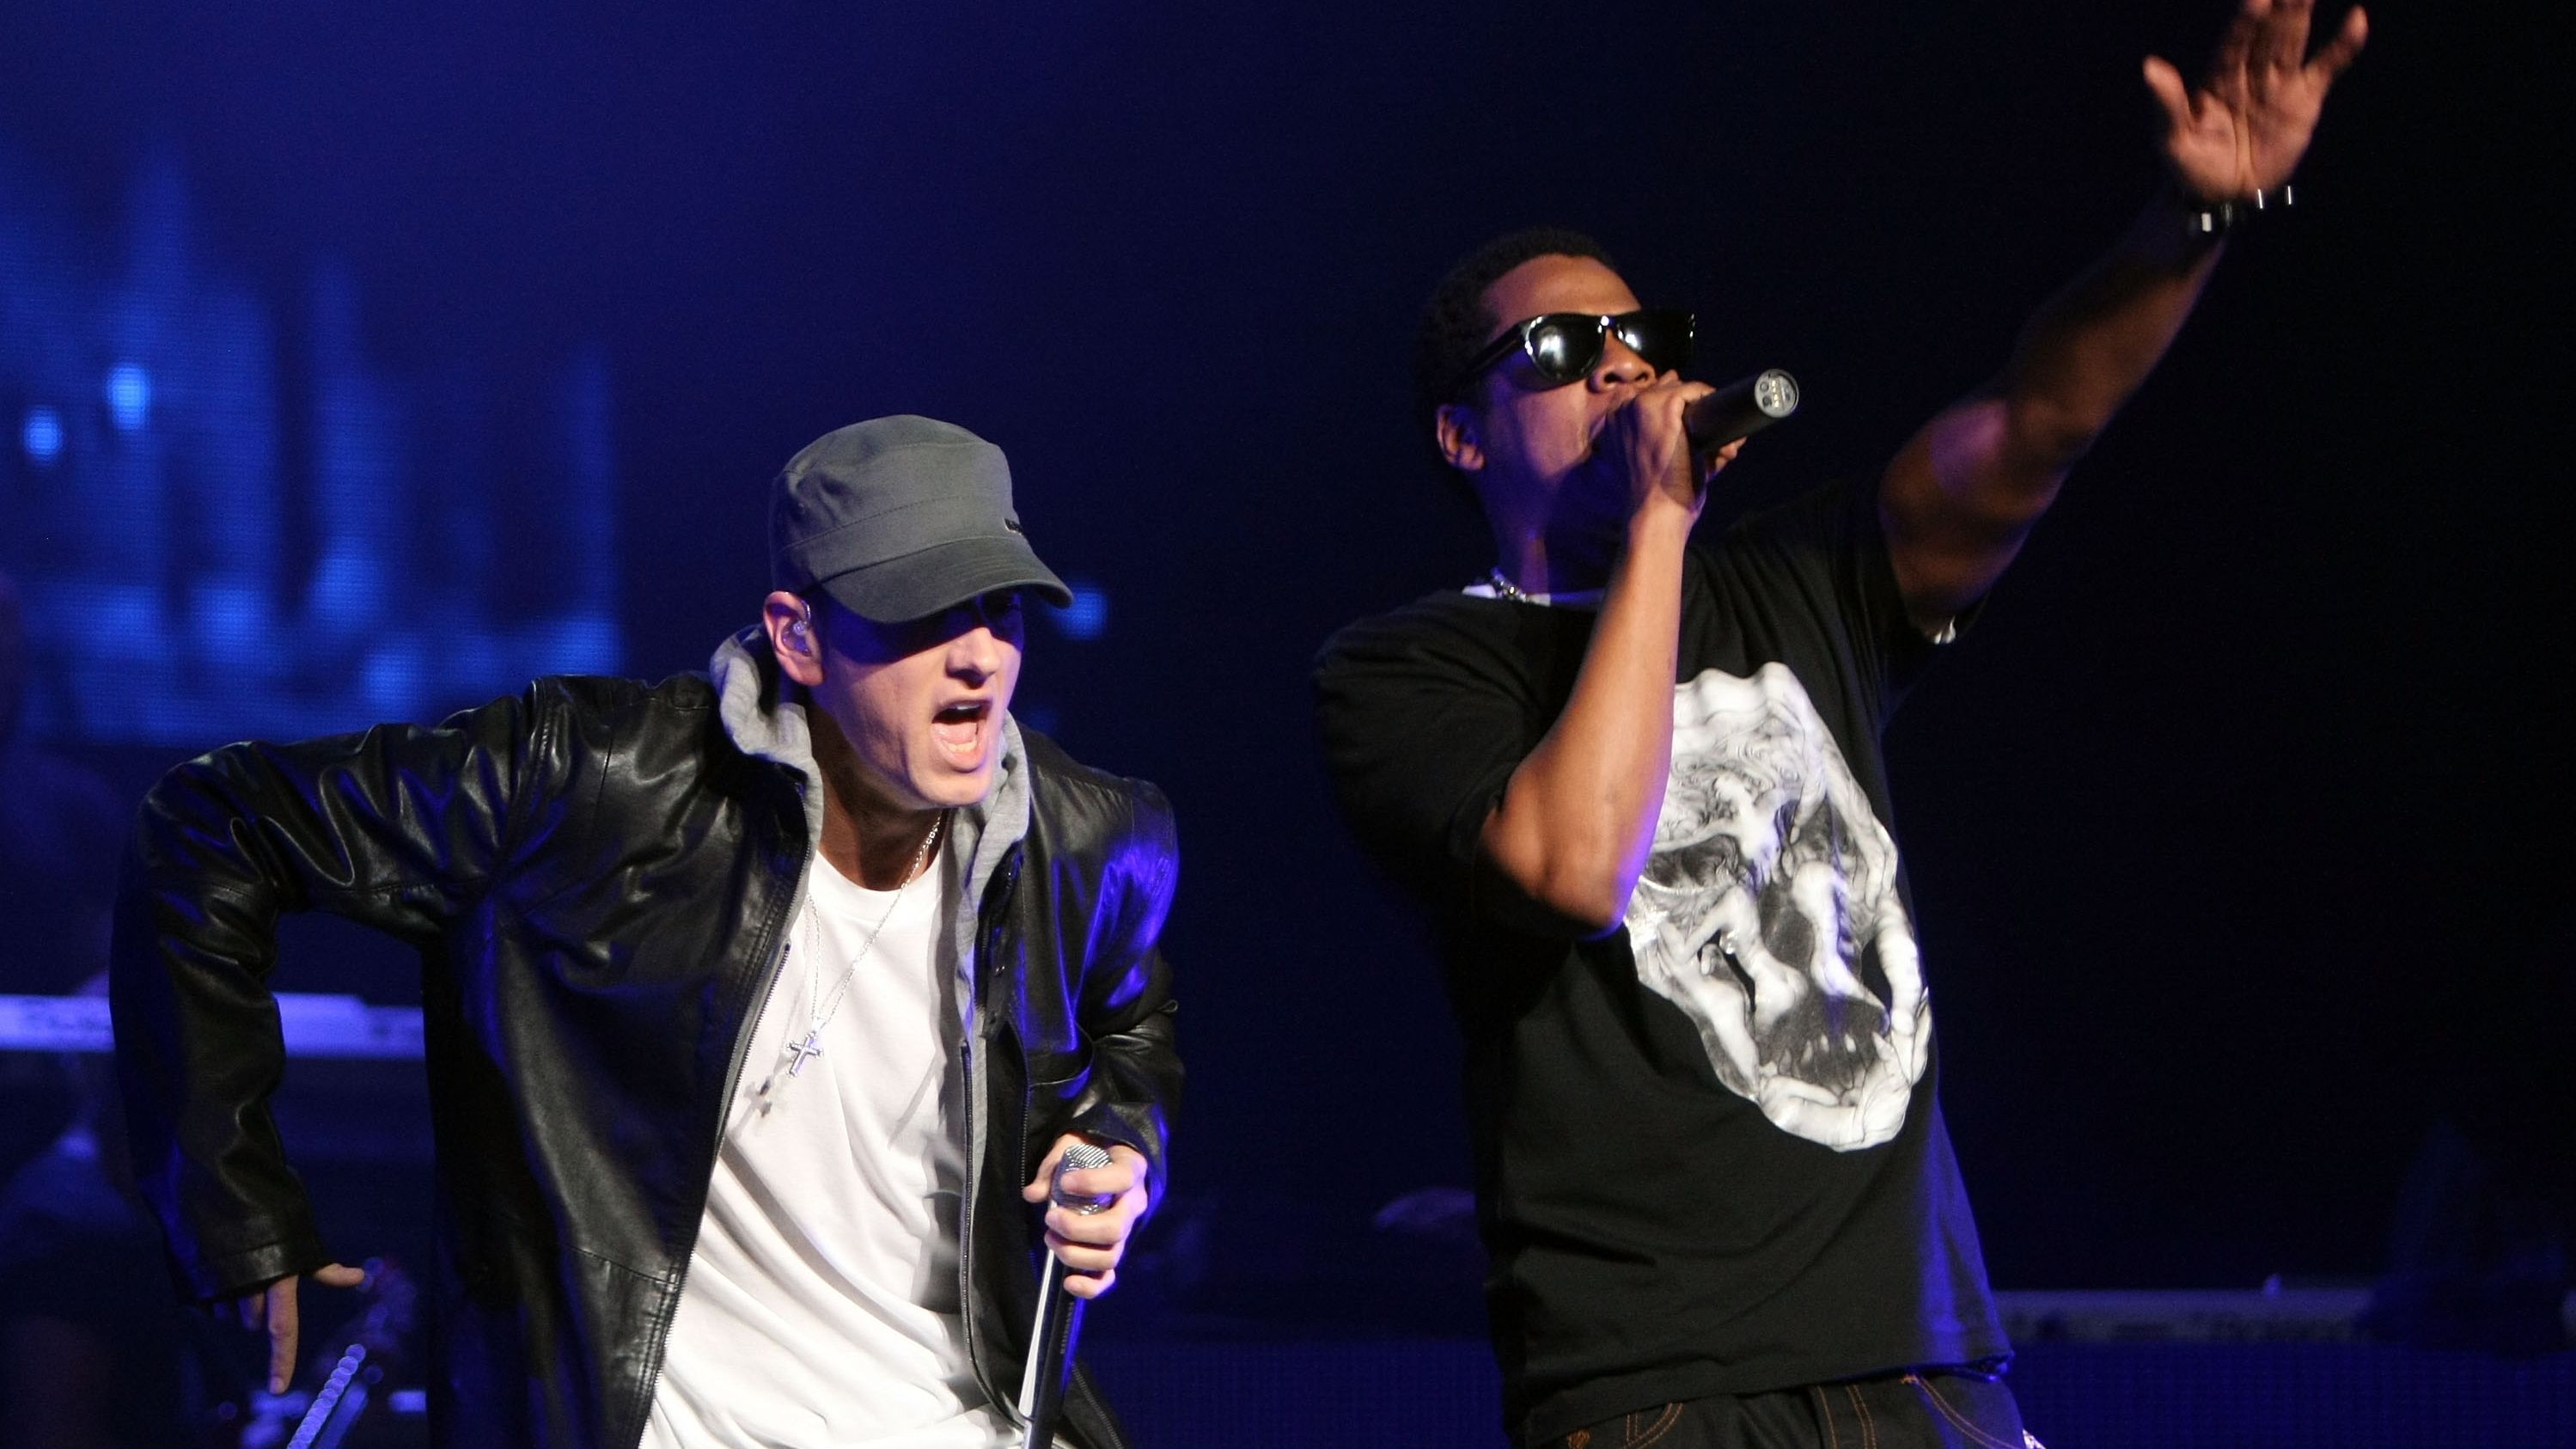 Jay Z, Eminem And 5 Other Rappers Who Responded To 9/11 In Rhymes - MTV